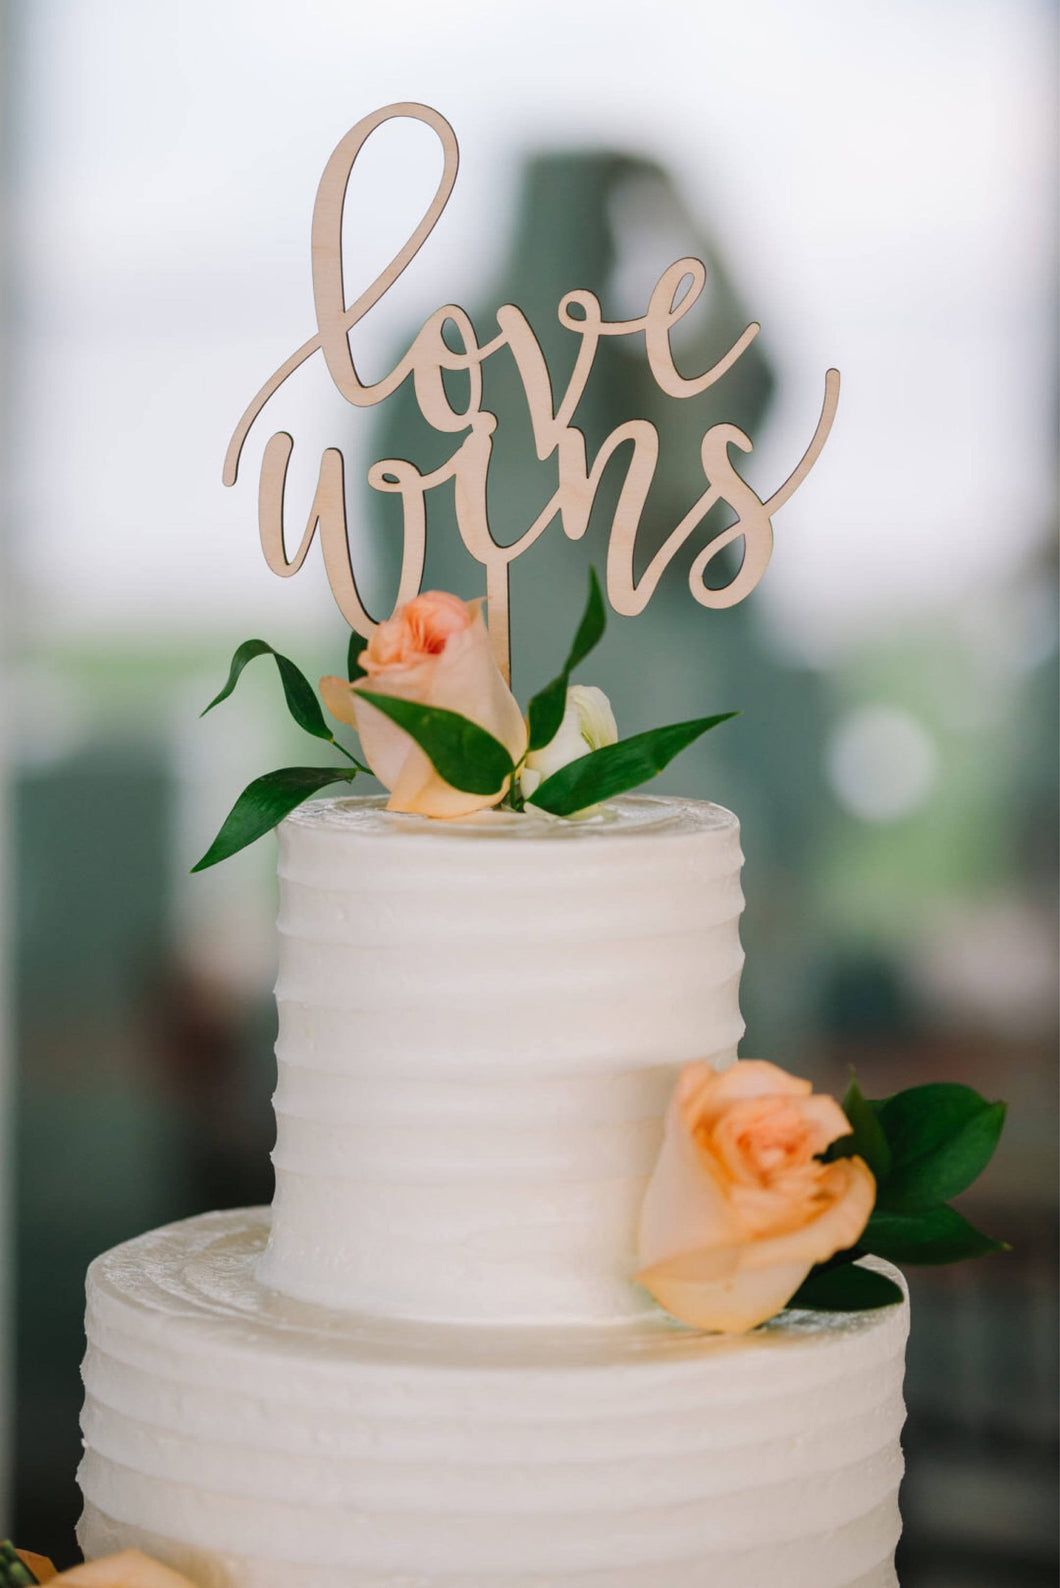 Love Wins Cake Topper, 6